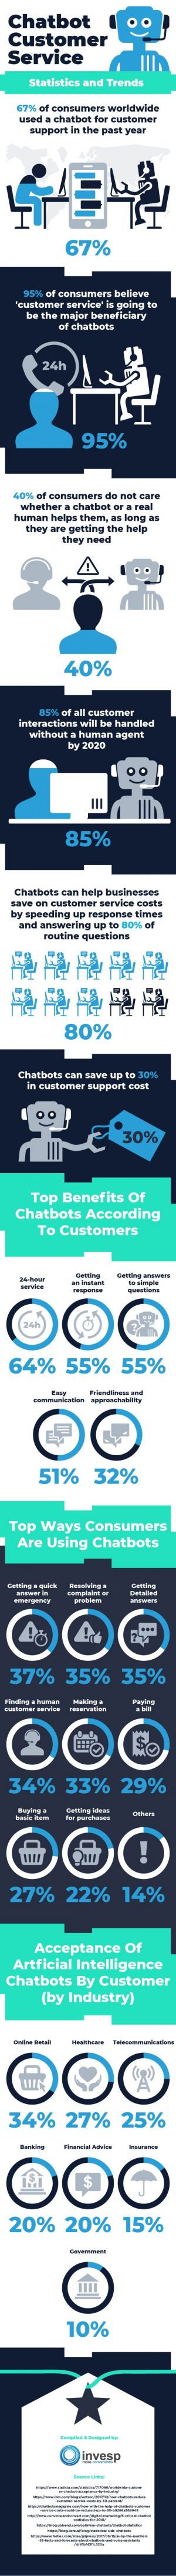 The Growth of Chatbots Usage in Customer Service Industry